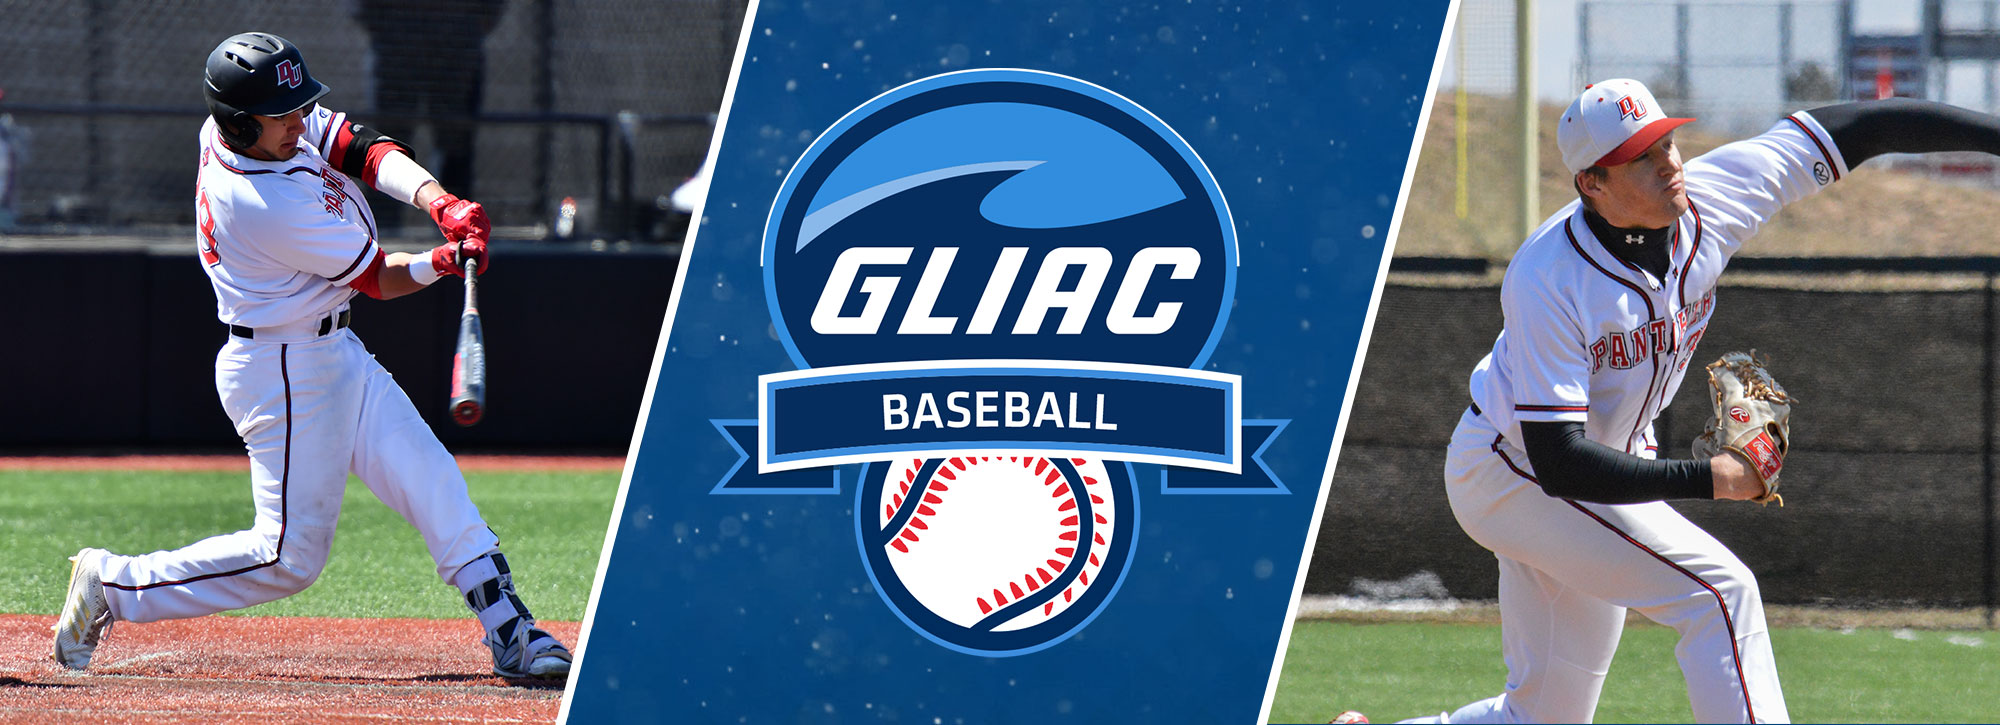 Davenport's Wolfram & Petravicius Sweep GLIAC Baseball Player of the Week Honors